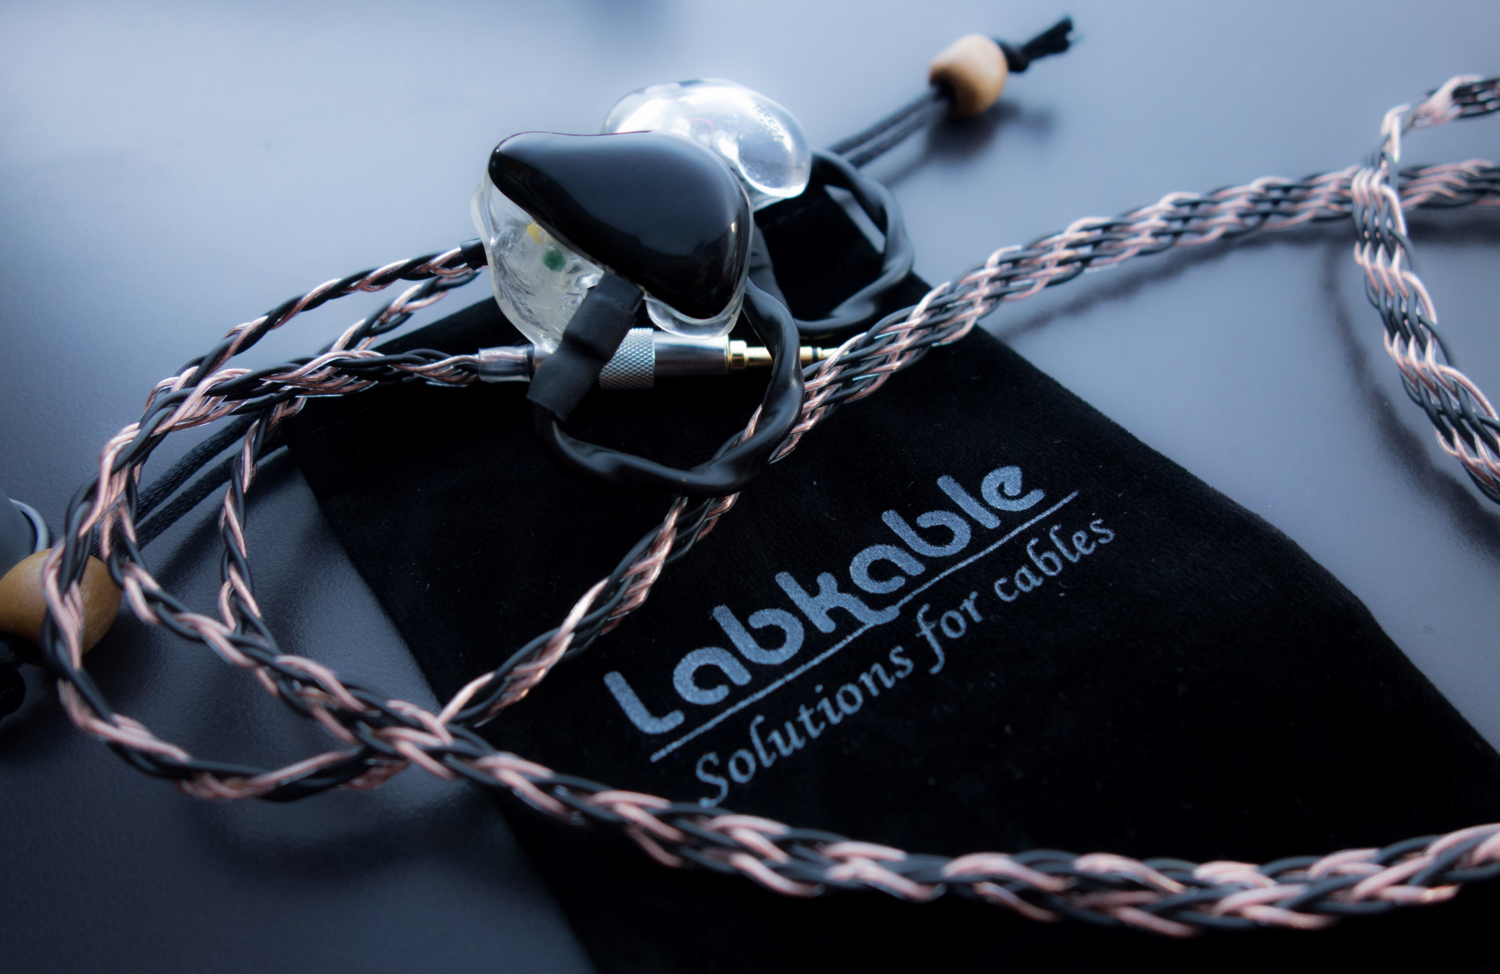 The Labkable takumi master series custom cable for in ear monitors.